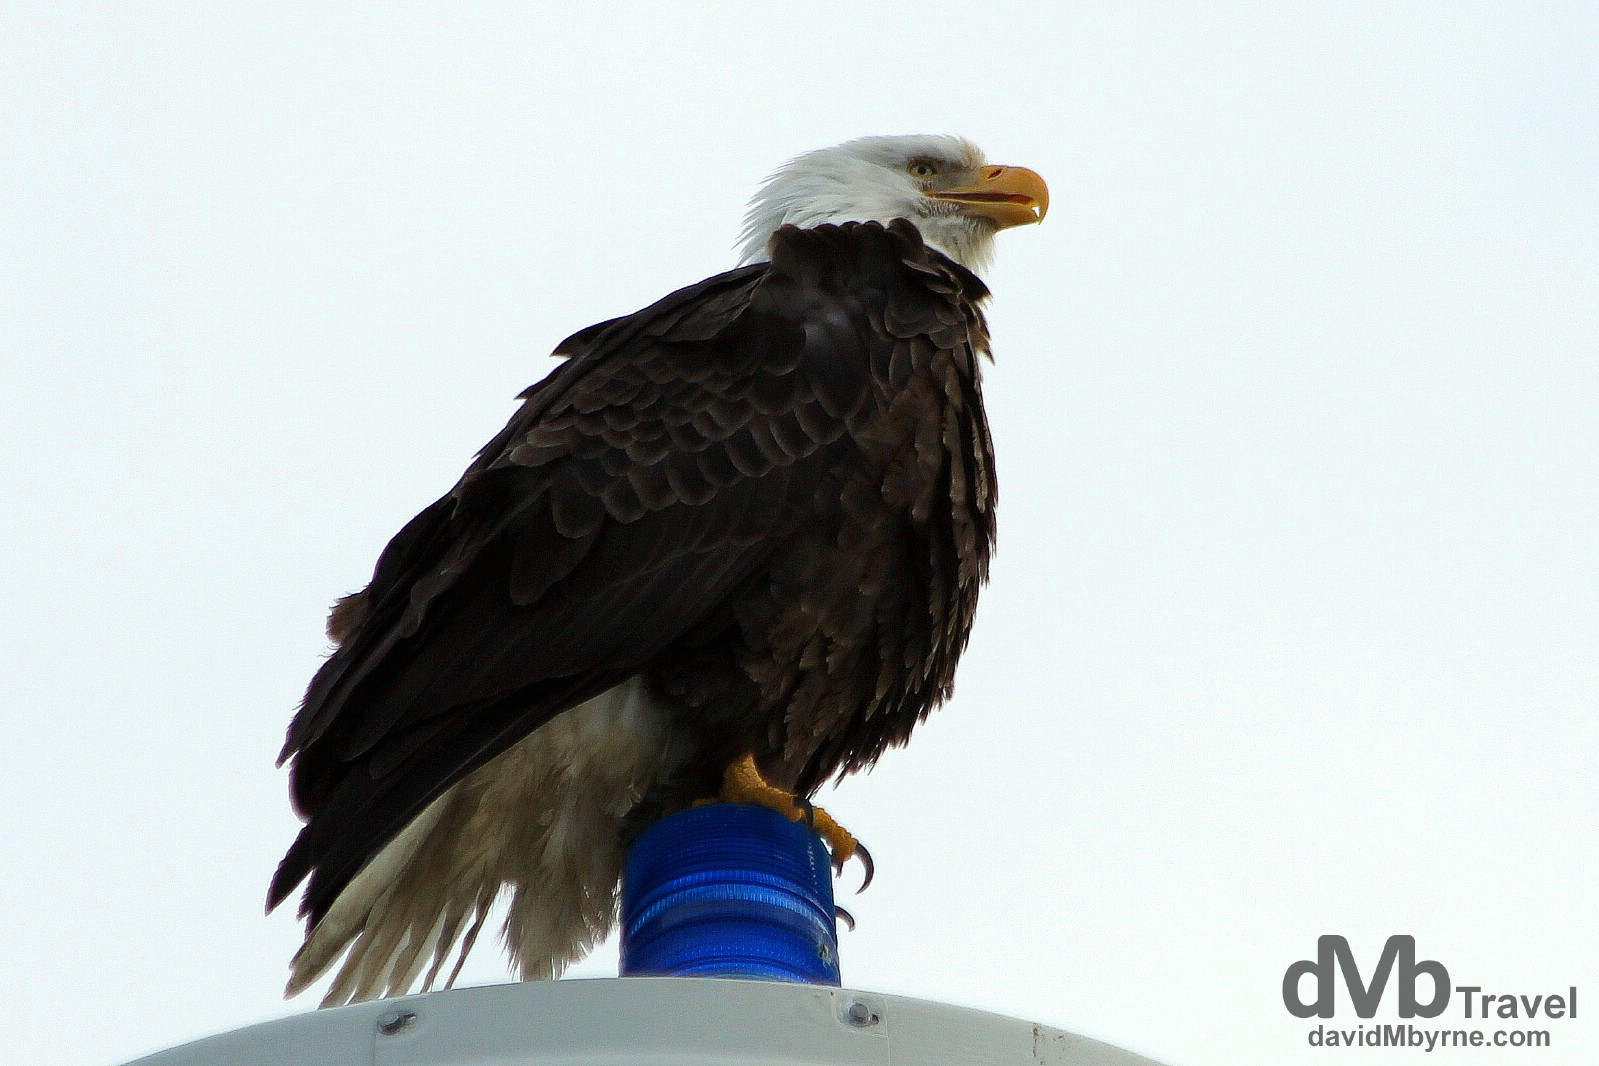 An eagle perched on a pole on the Spit in Homer, Alaska. I sat in the car under this eagle for about 10 minutes snapping him. I had the camera on him the whole time waiting for the moment he'd take flight. He never did. Patient bugger (more so than me at least). On the Spit in Homer, Kenai Peninsula, Alaska. March 16th 2013.